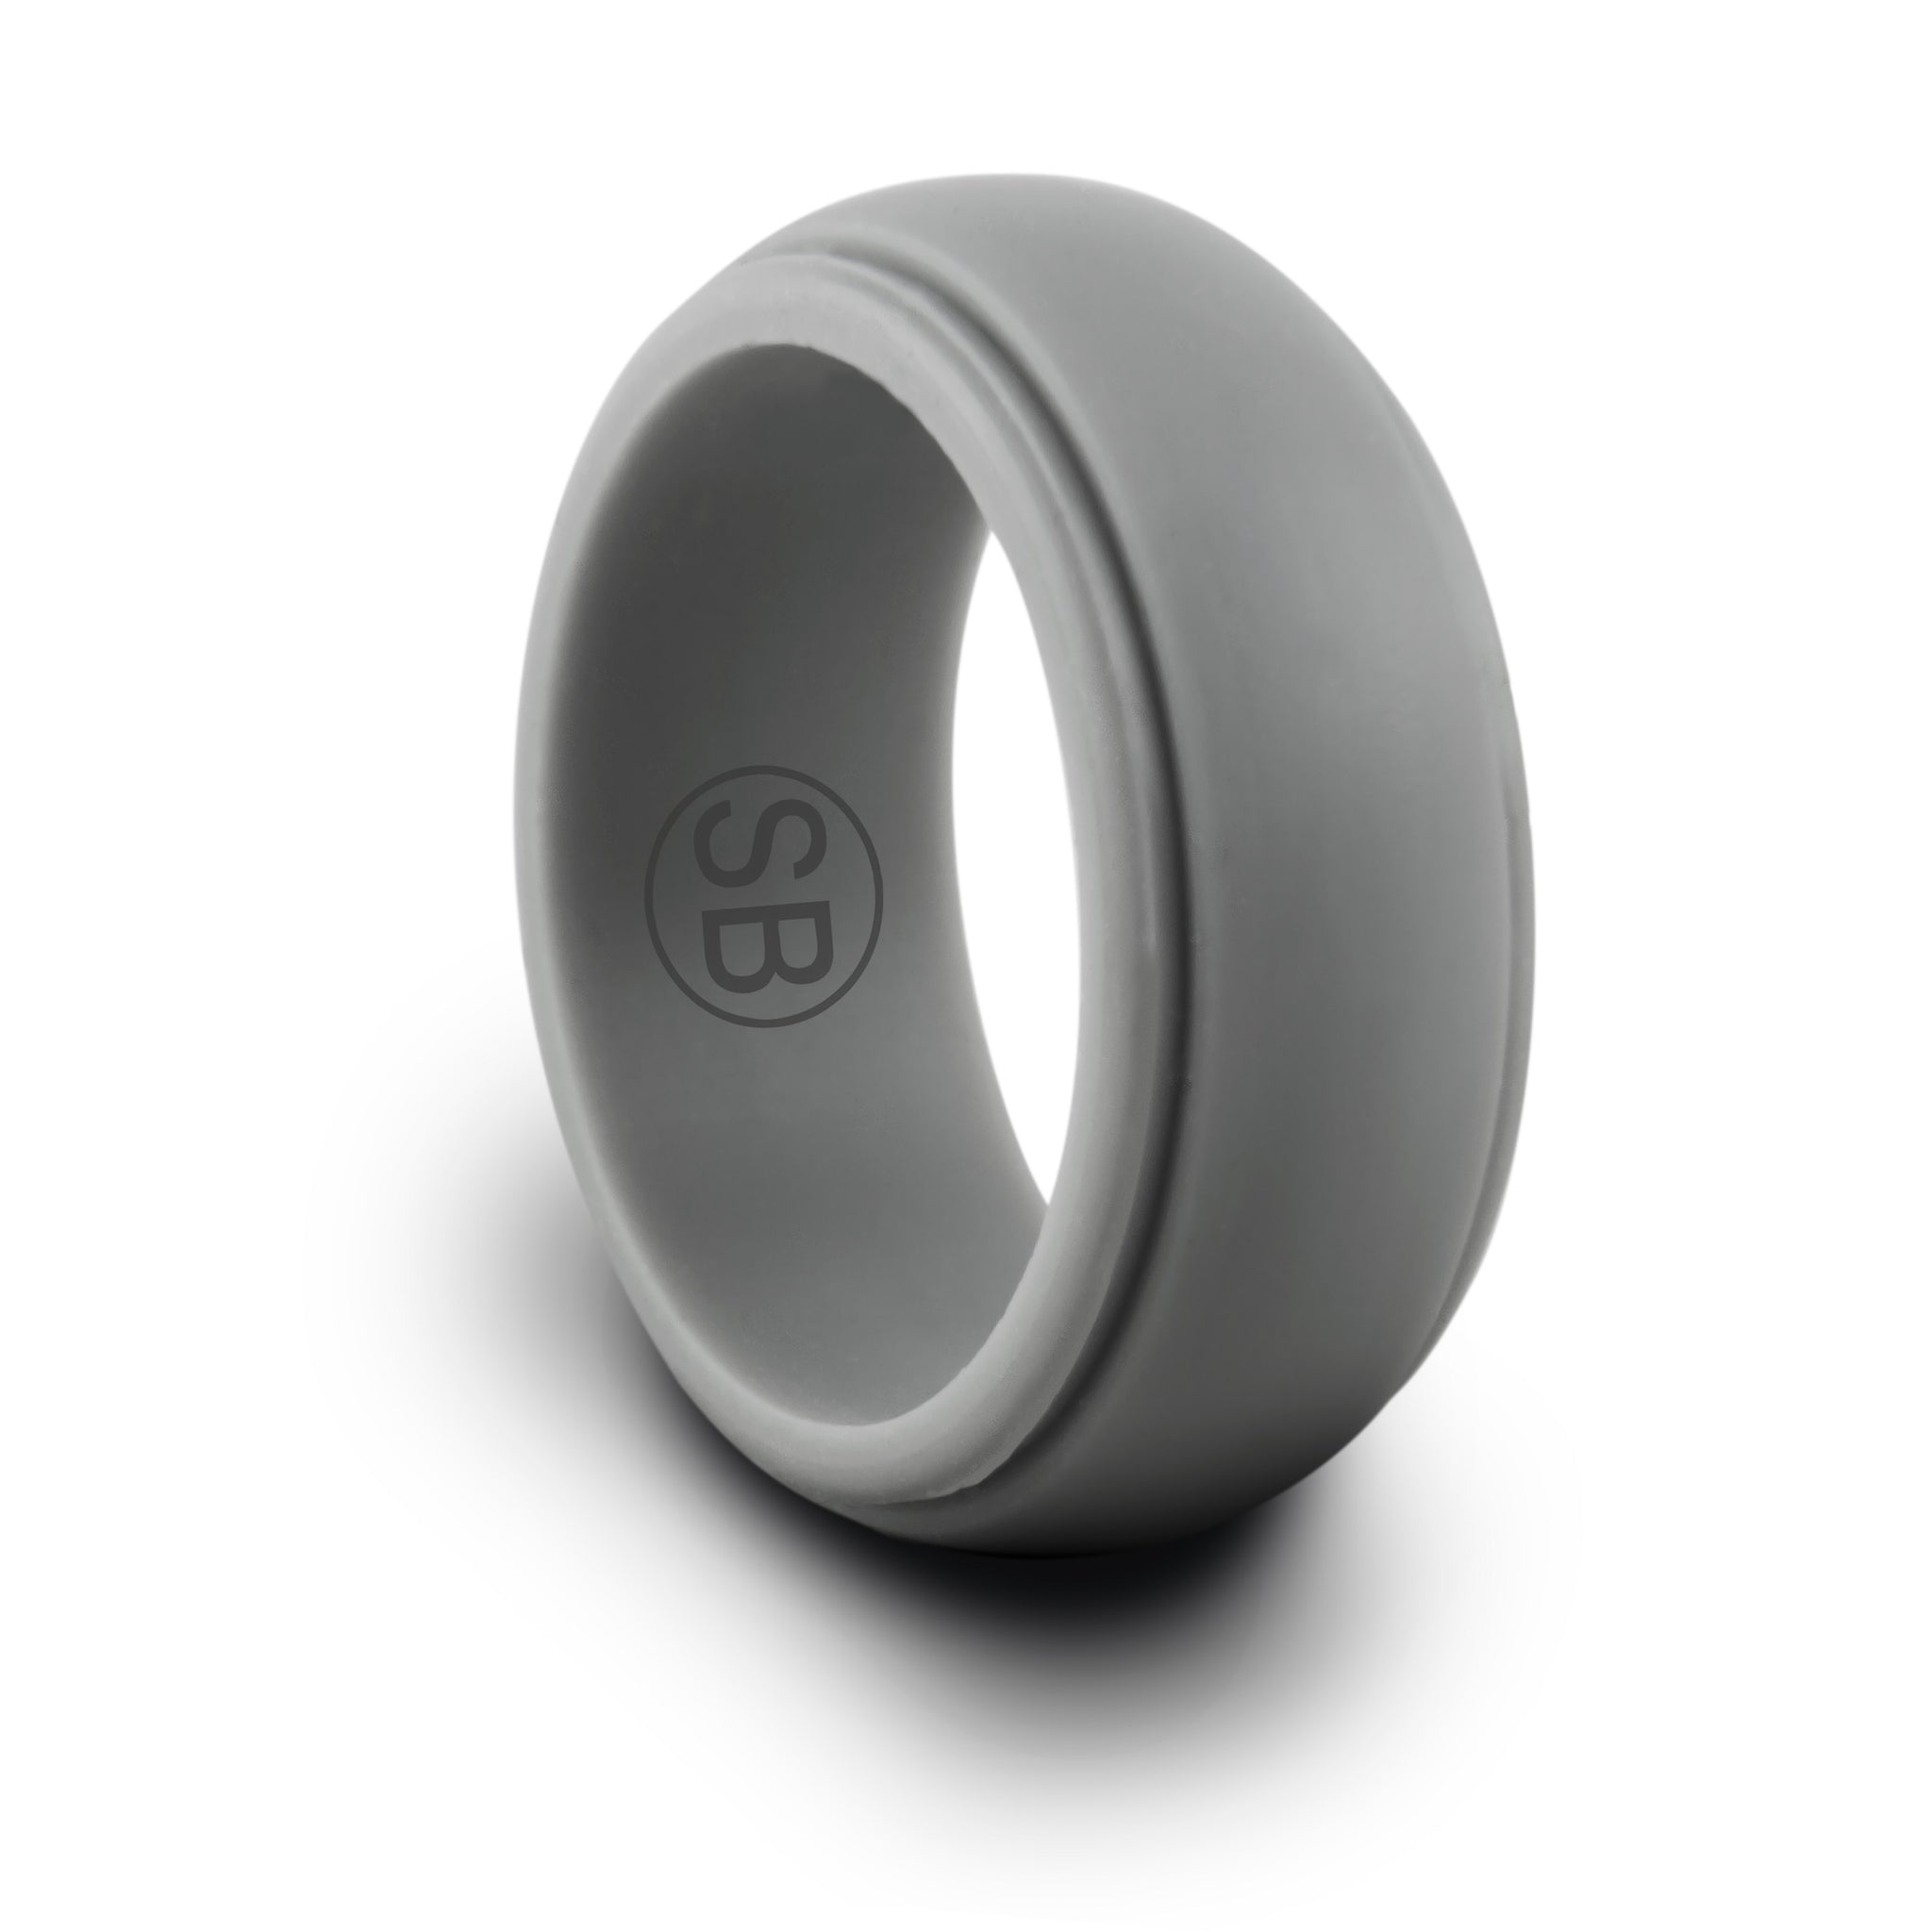 Light / Dark Gray Silicone Rings